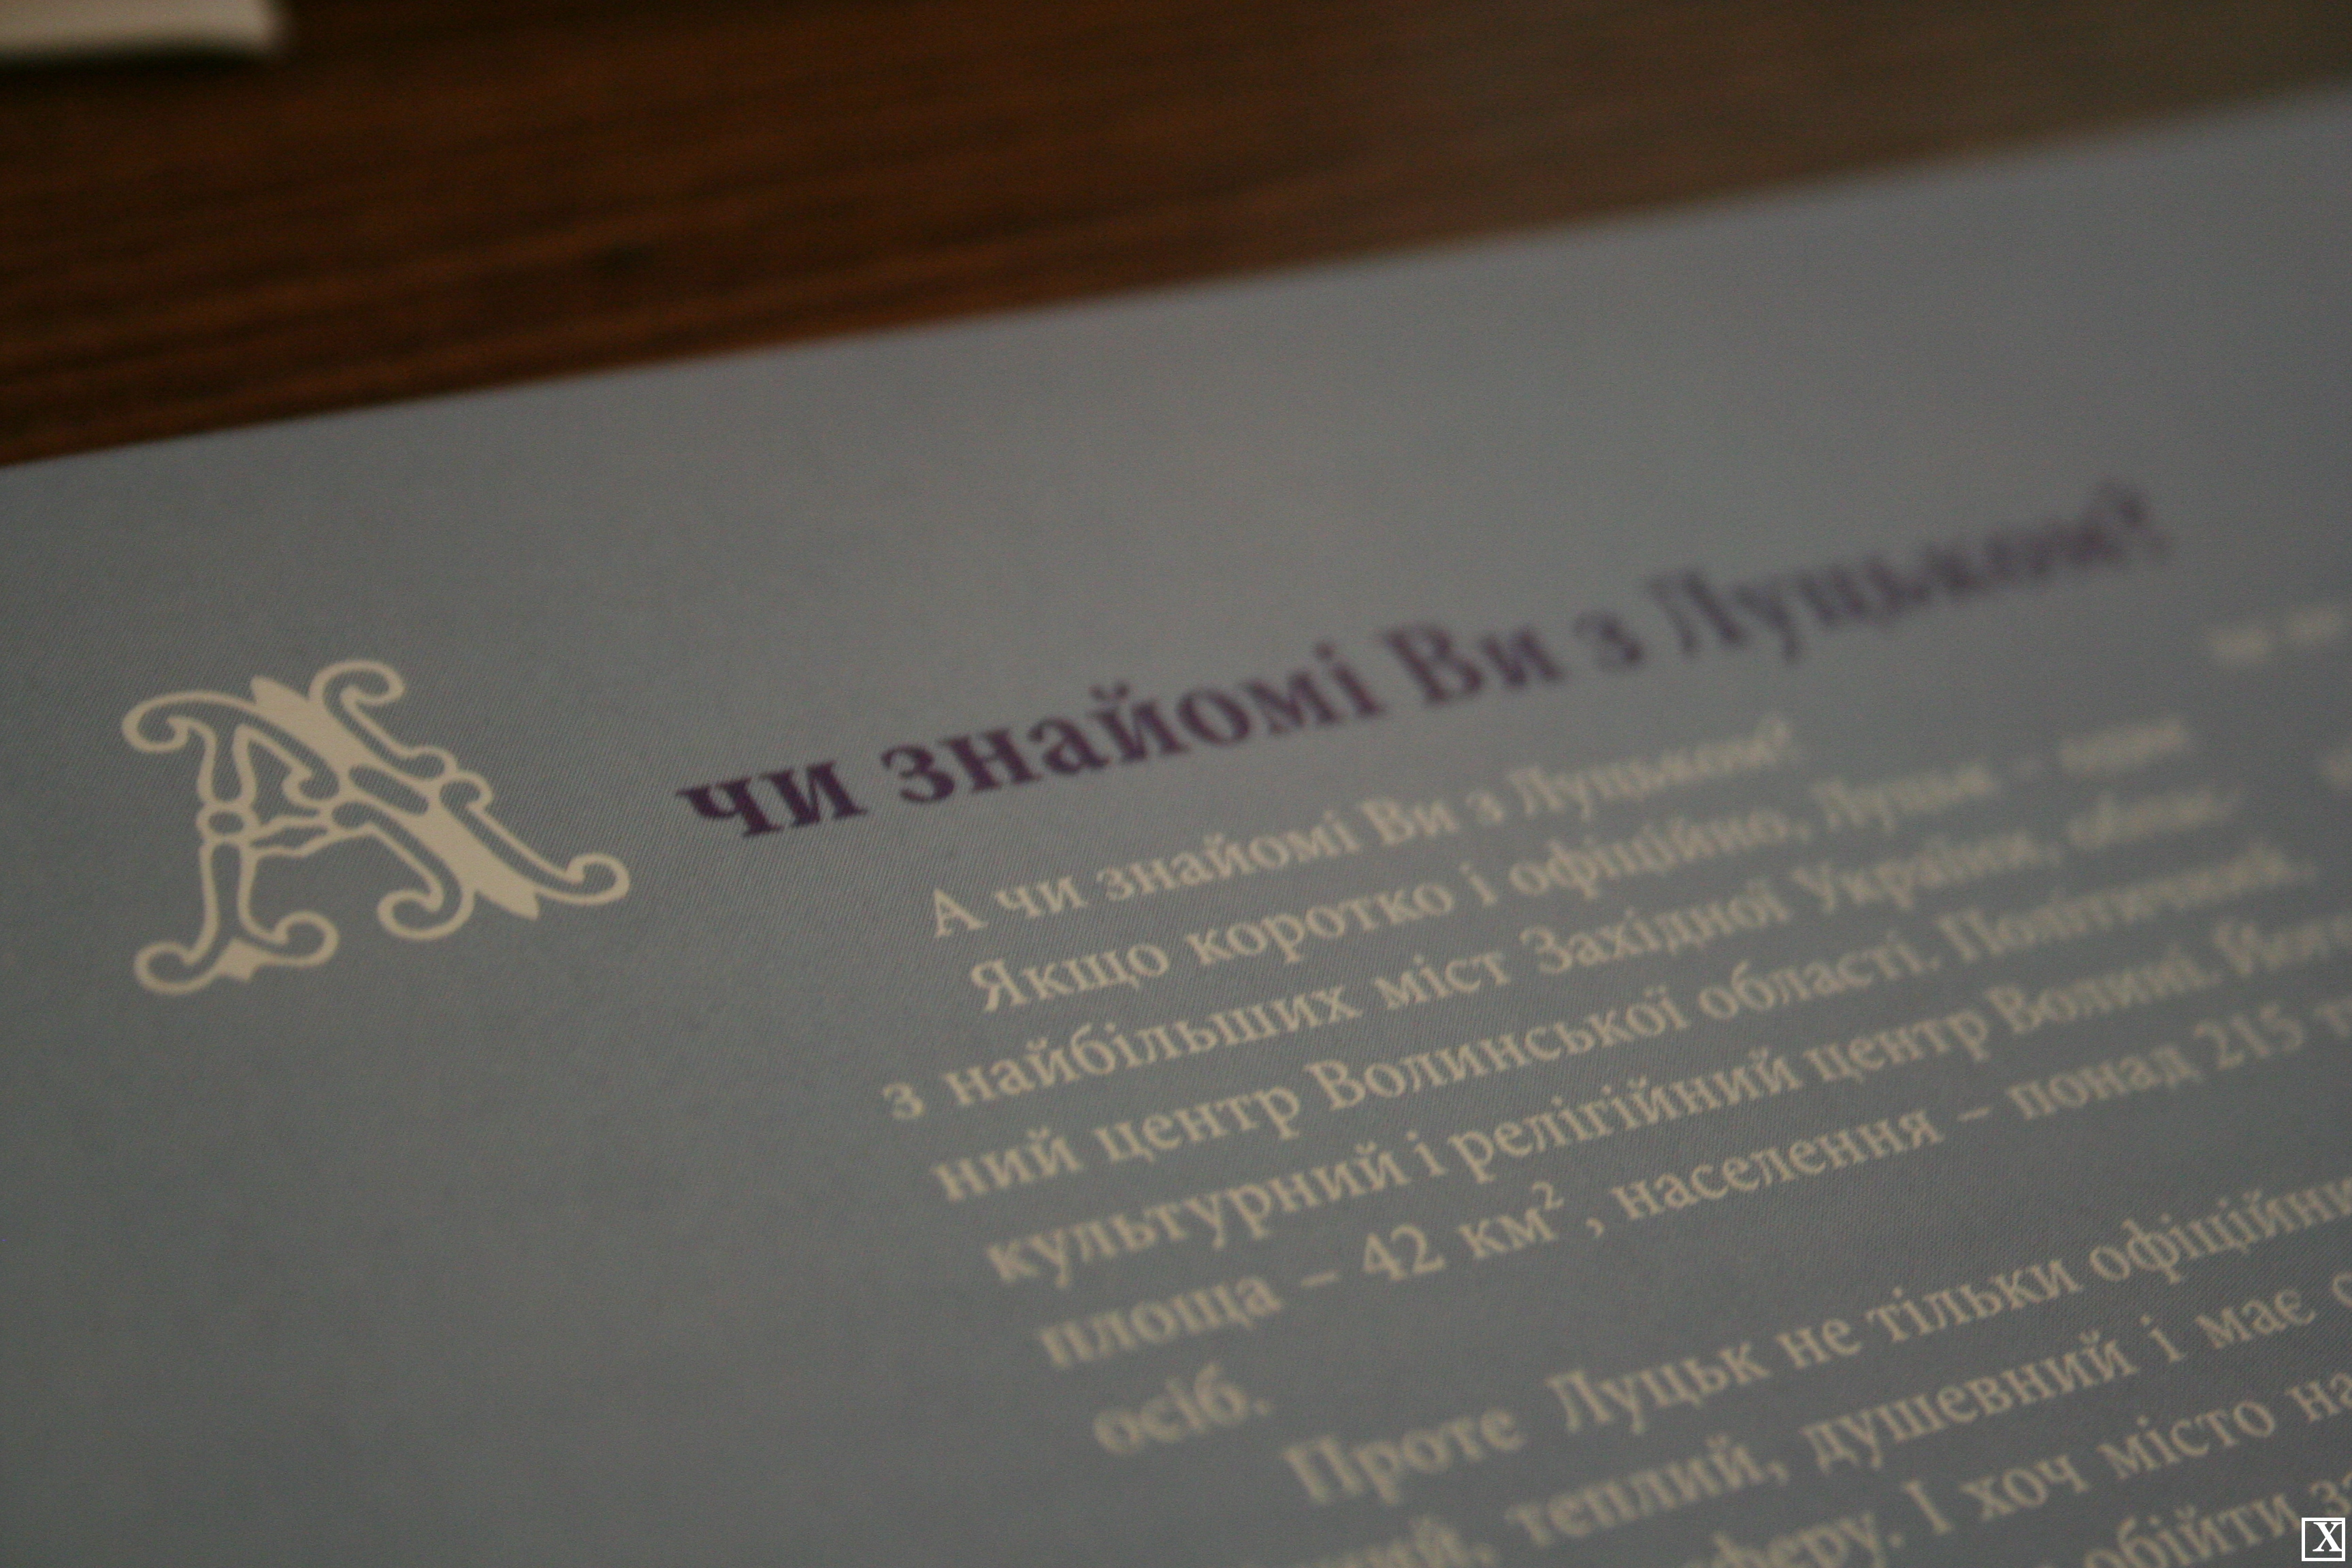 Employment agencies in Lutsk and region: a selection of sites